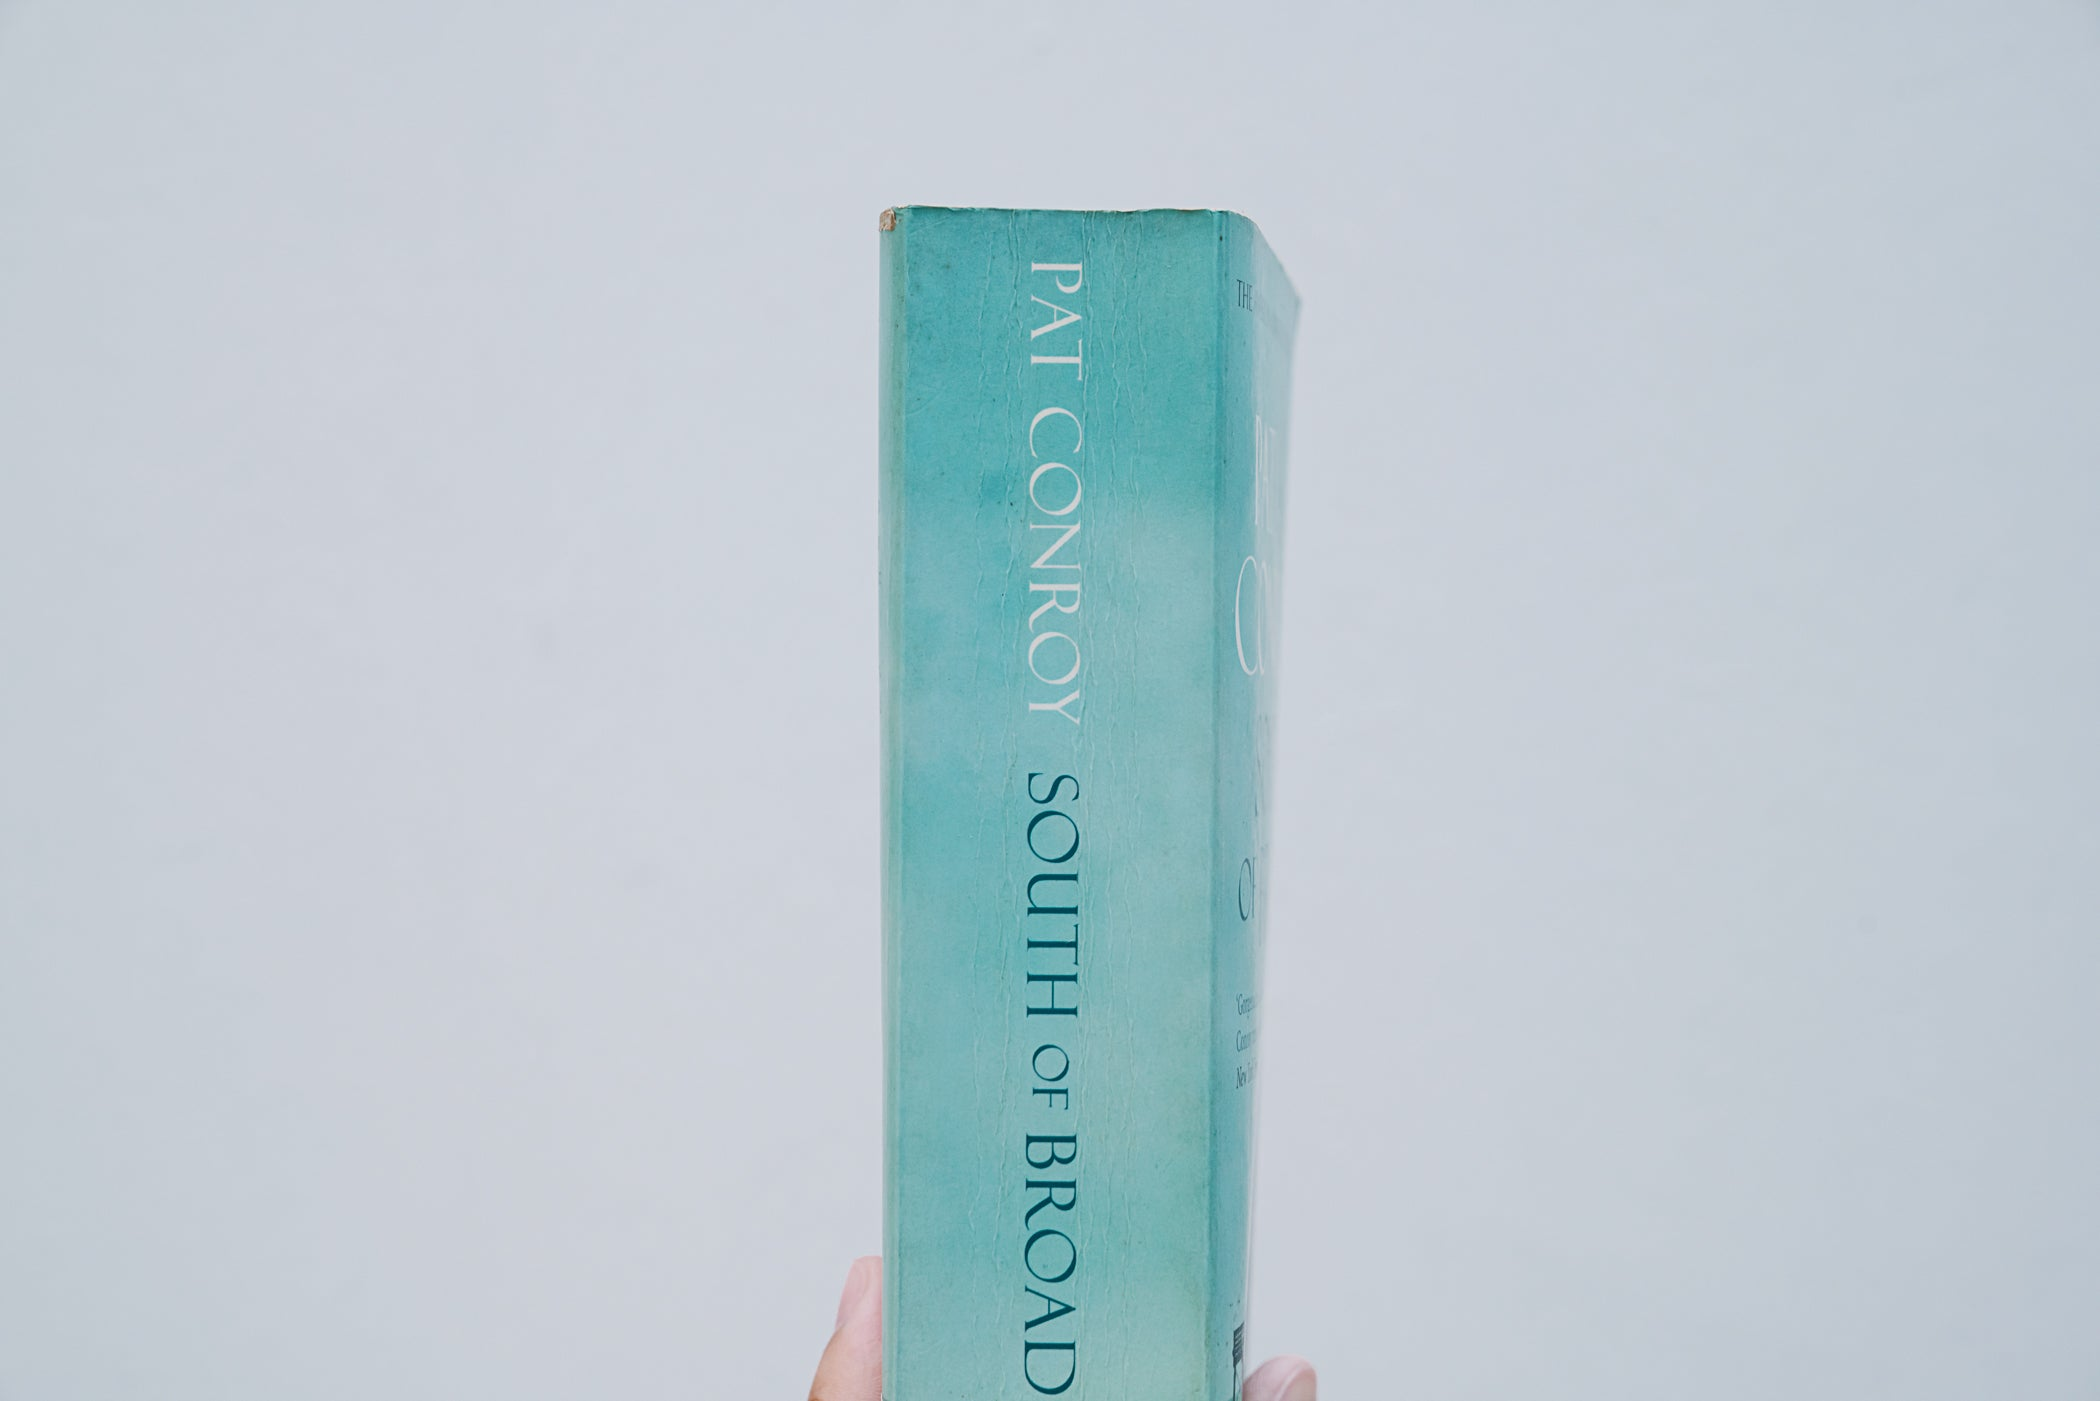 Spine of book in Good condition